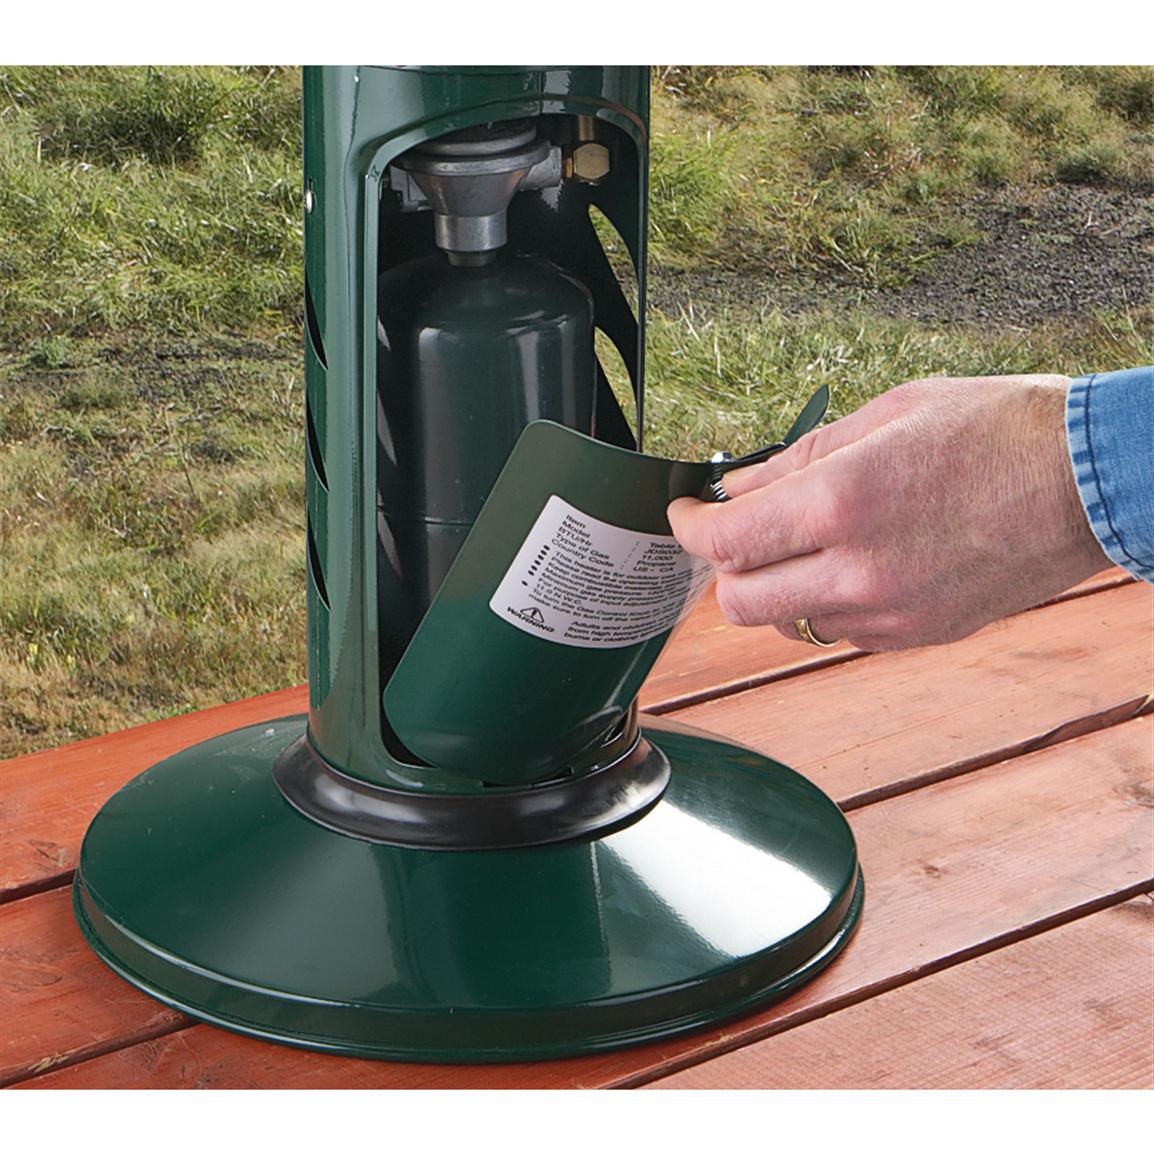 Portable Tabletop Propane Heater 156213 Stoves At